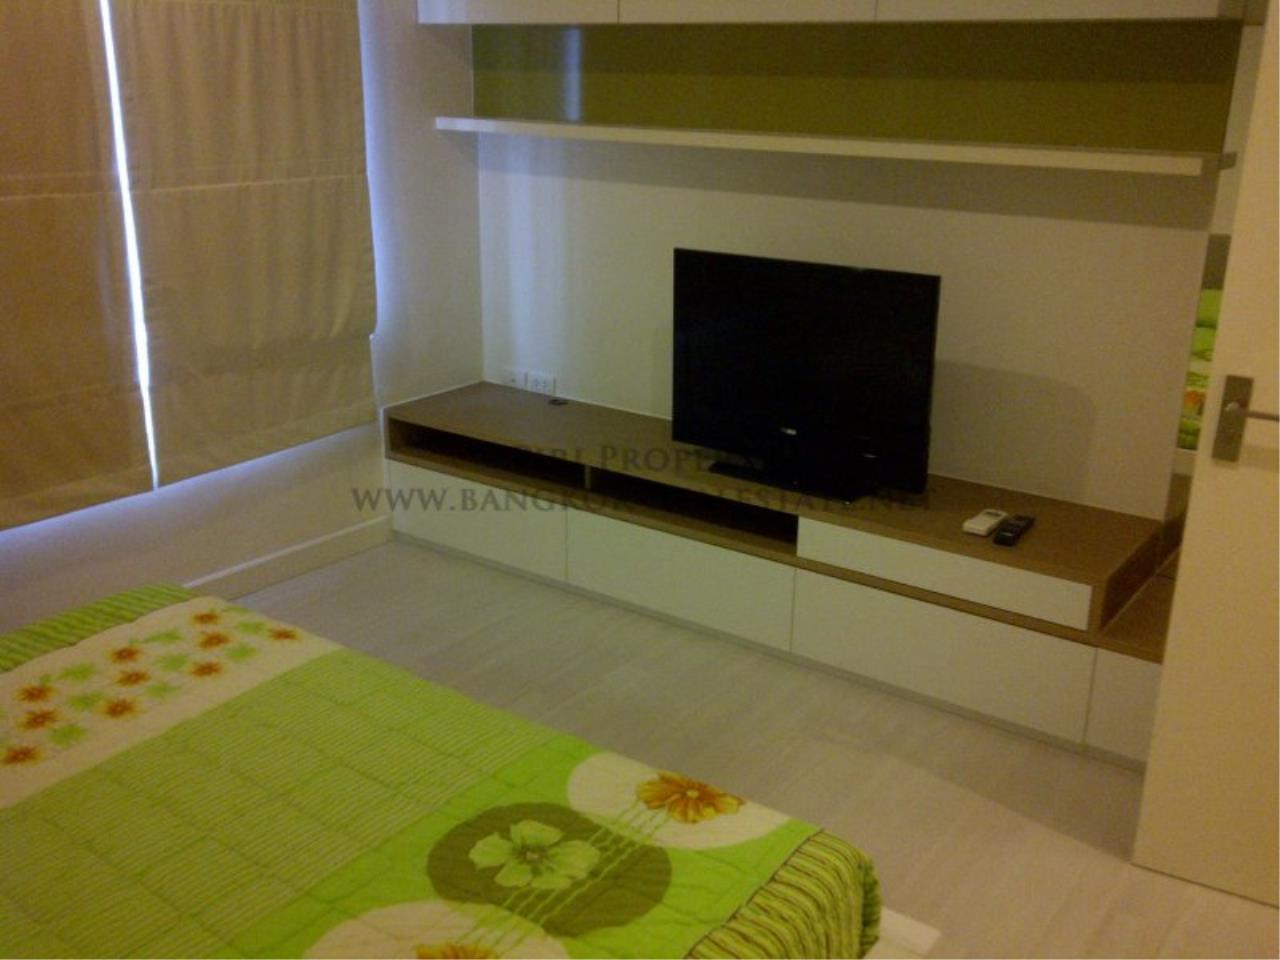 Piri Property Agency's The Room Lad Prao - 2 Bedroom on High Floor - 61SQM - 25K 2